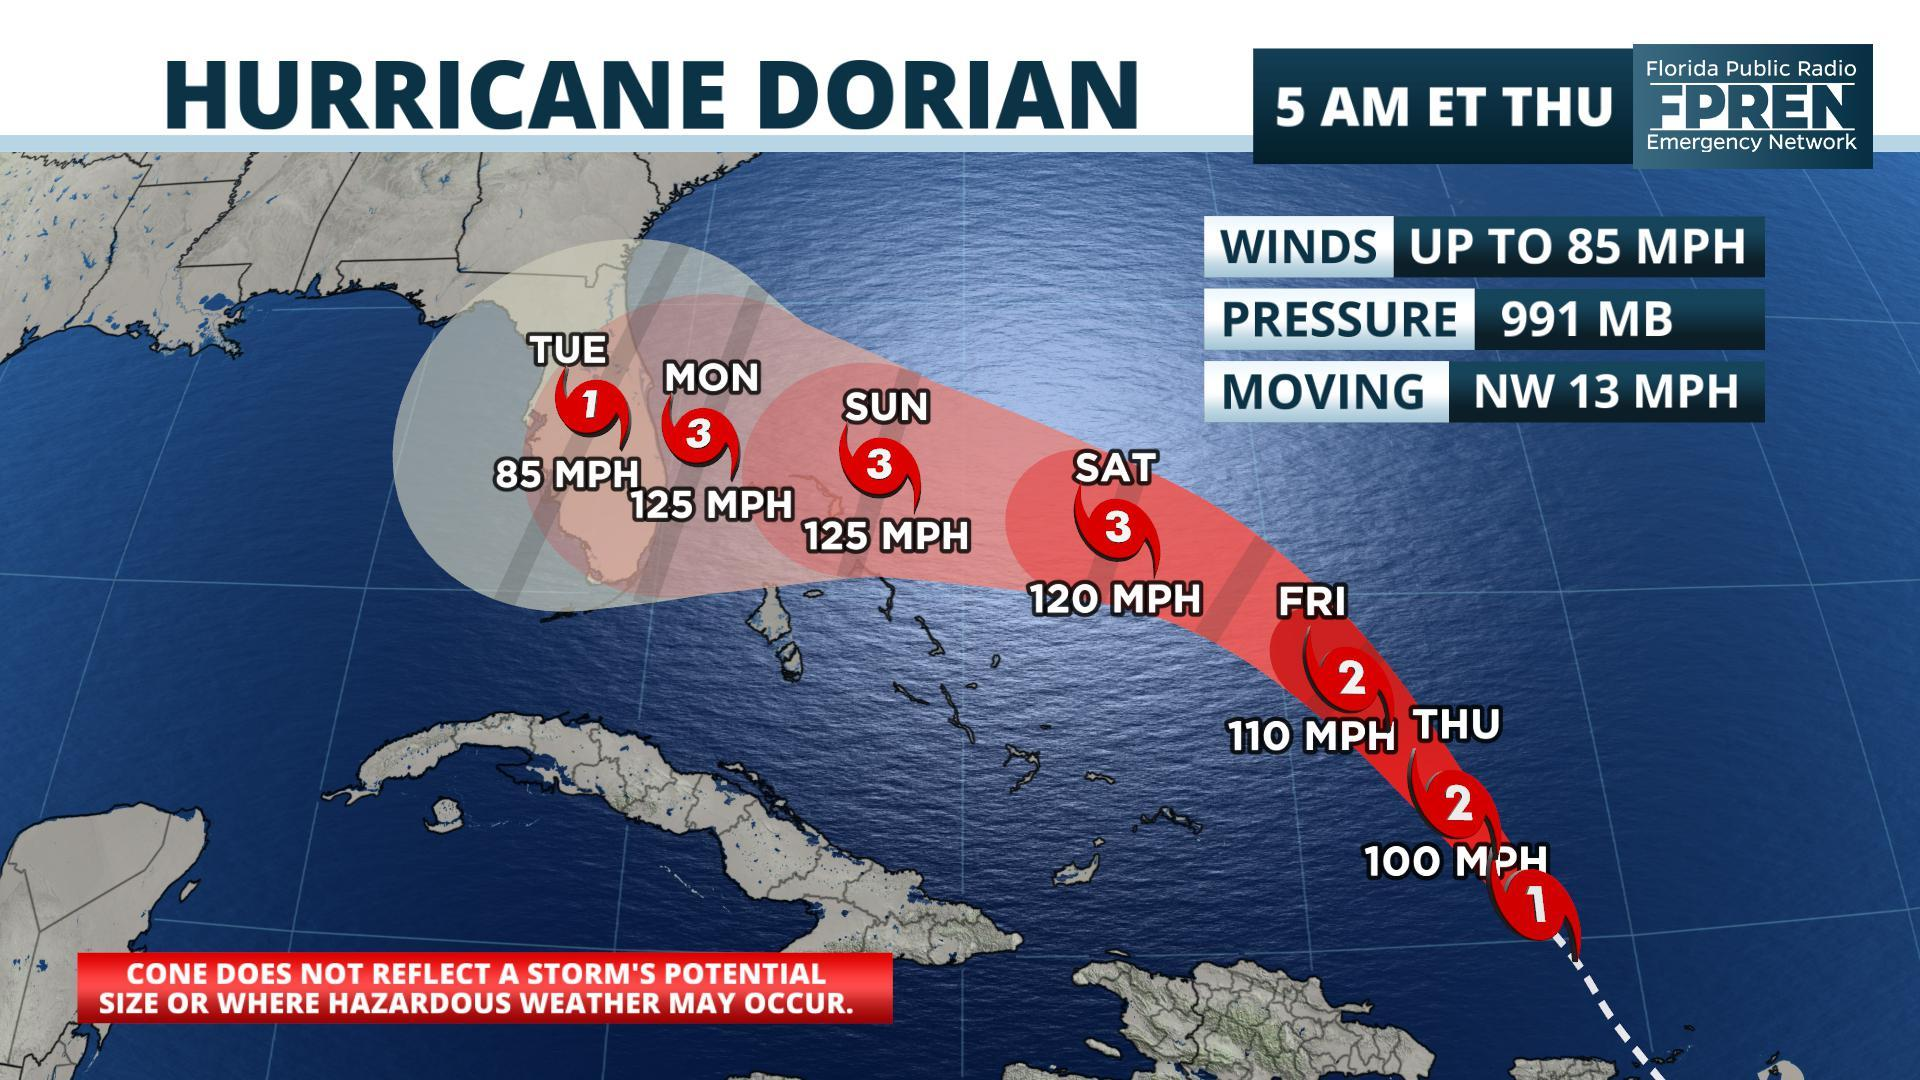 Hurricane Dorian could hit U.S. coast as catastrophic Category 4 storm